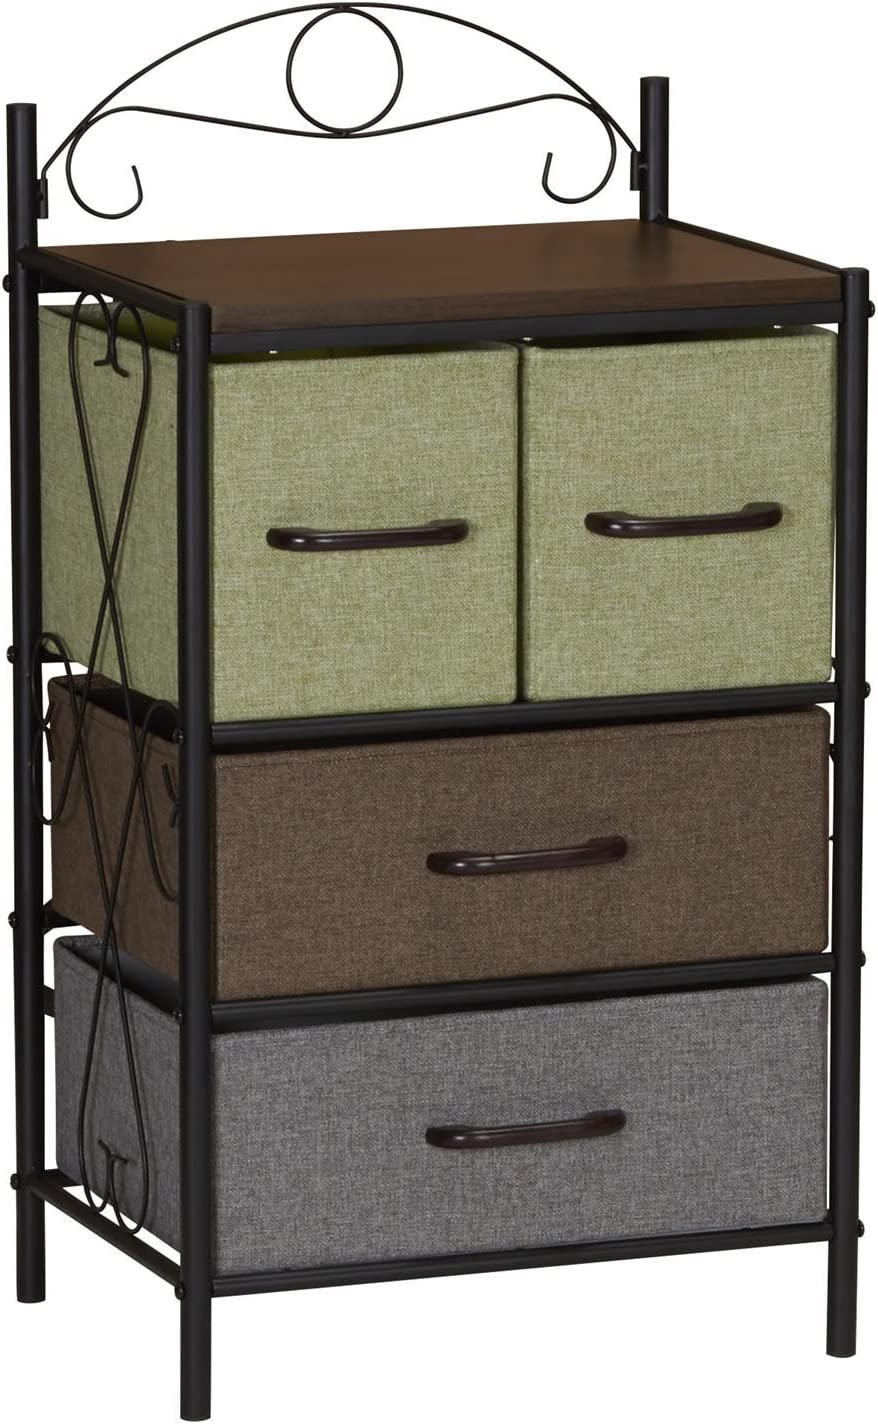 Household Essentials 8042-1 Victorian 4 Drawer Side Table | Storage Nightstand or Entryway Shelf